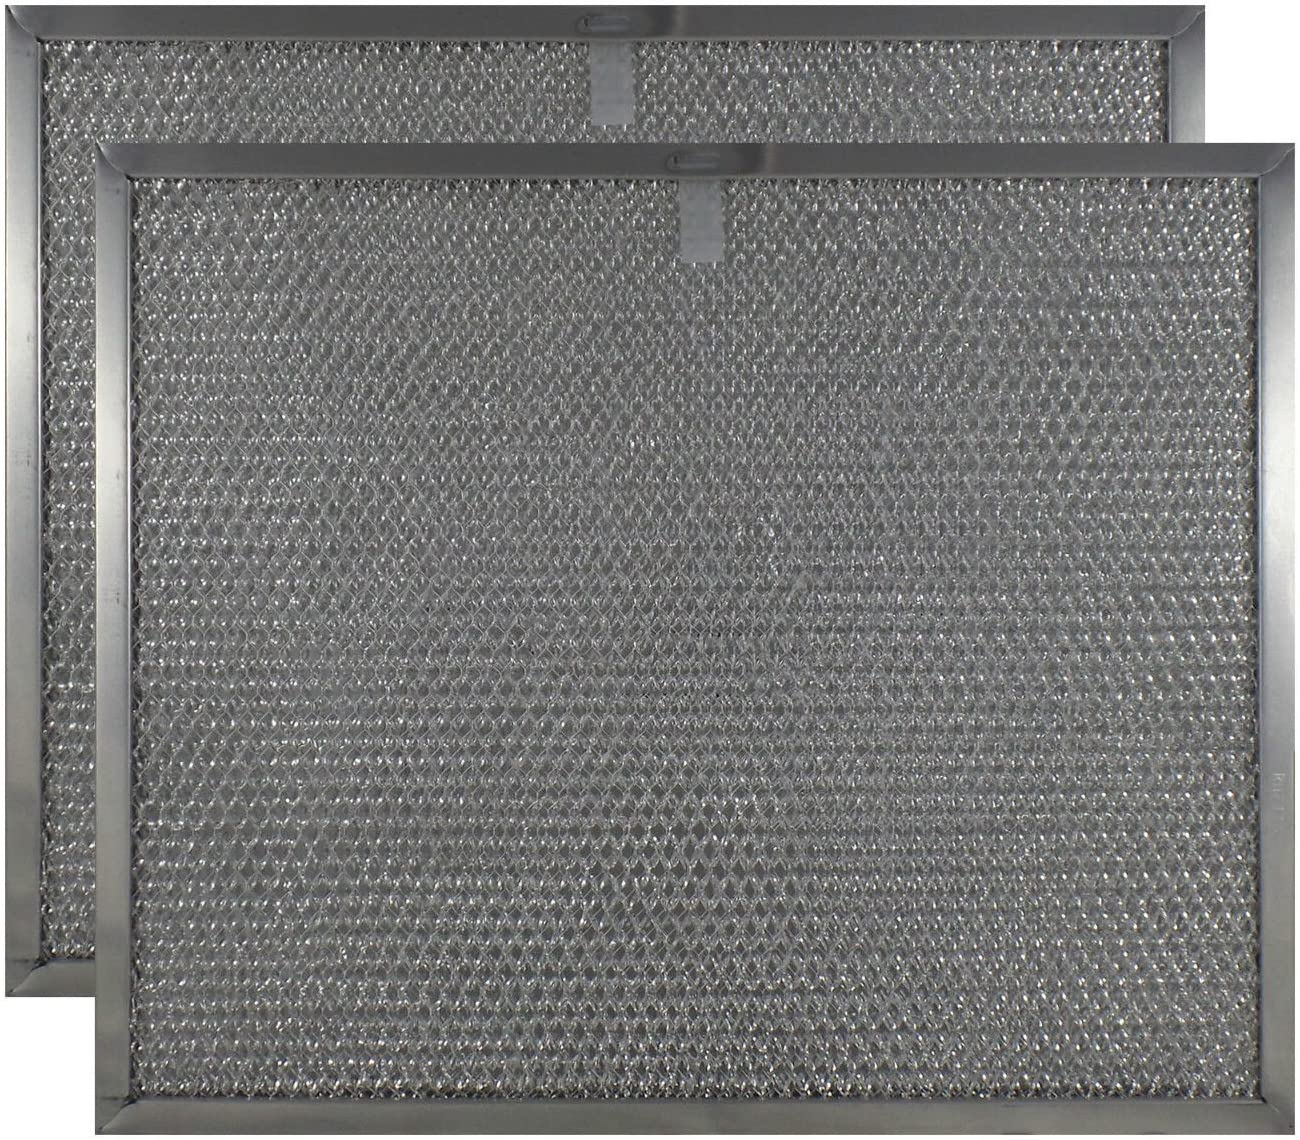 "Replacement Range Hood Filter Compatible with Broan Model BPS1FA30 (2-Pack) - 11-3/4"" X 14-1/4"" X 3/8"""